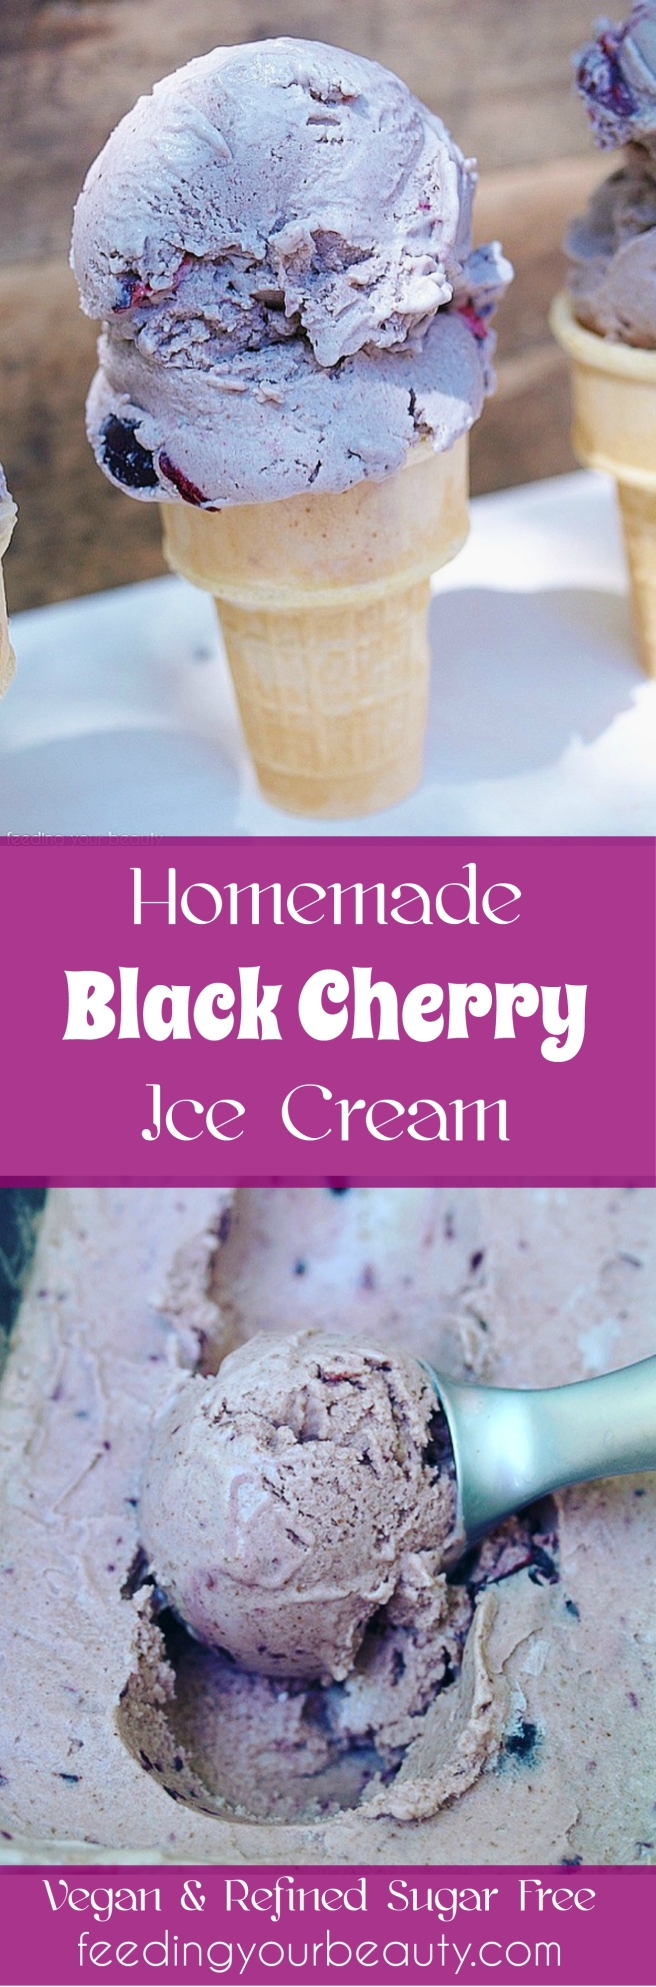 Black Cherry Ice Cream - Vegan, Refined Sugar Free, Naturally Flavored, Paleo